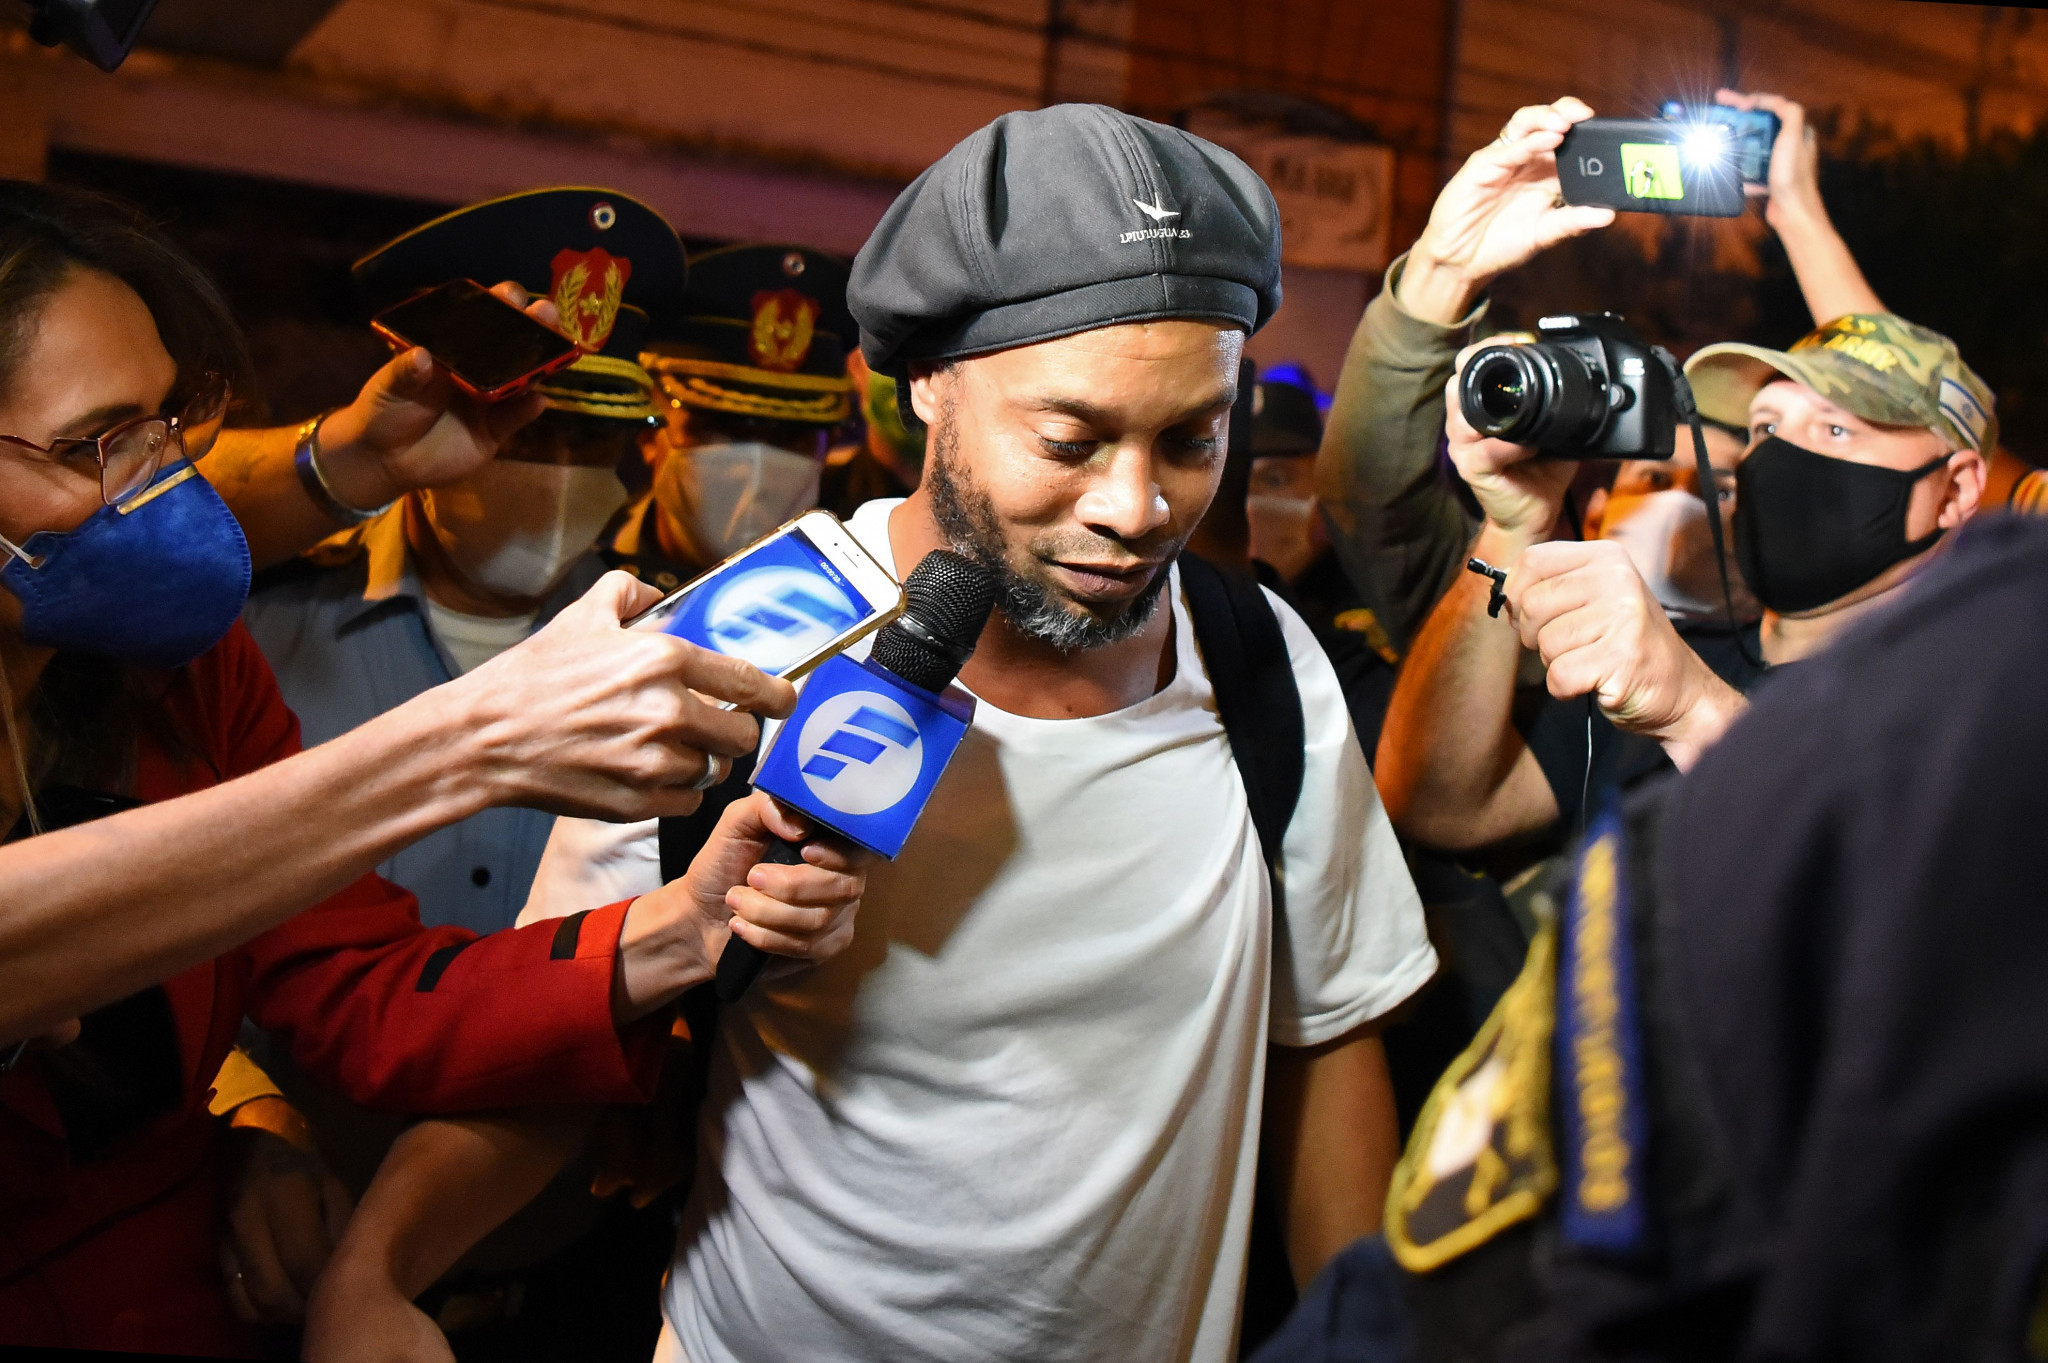 Ronaldinho released from house arrest after alleged fake passport entry into Paraguay